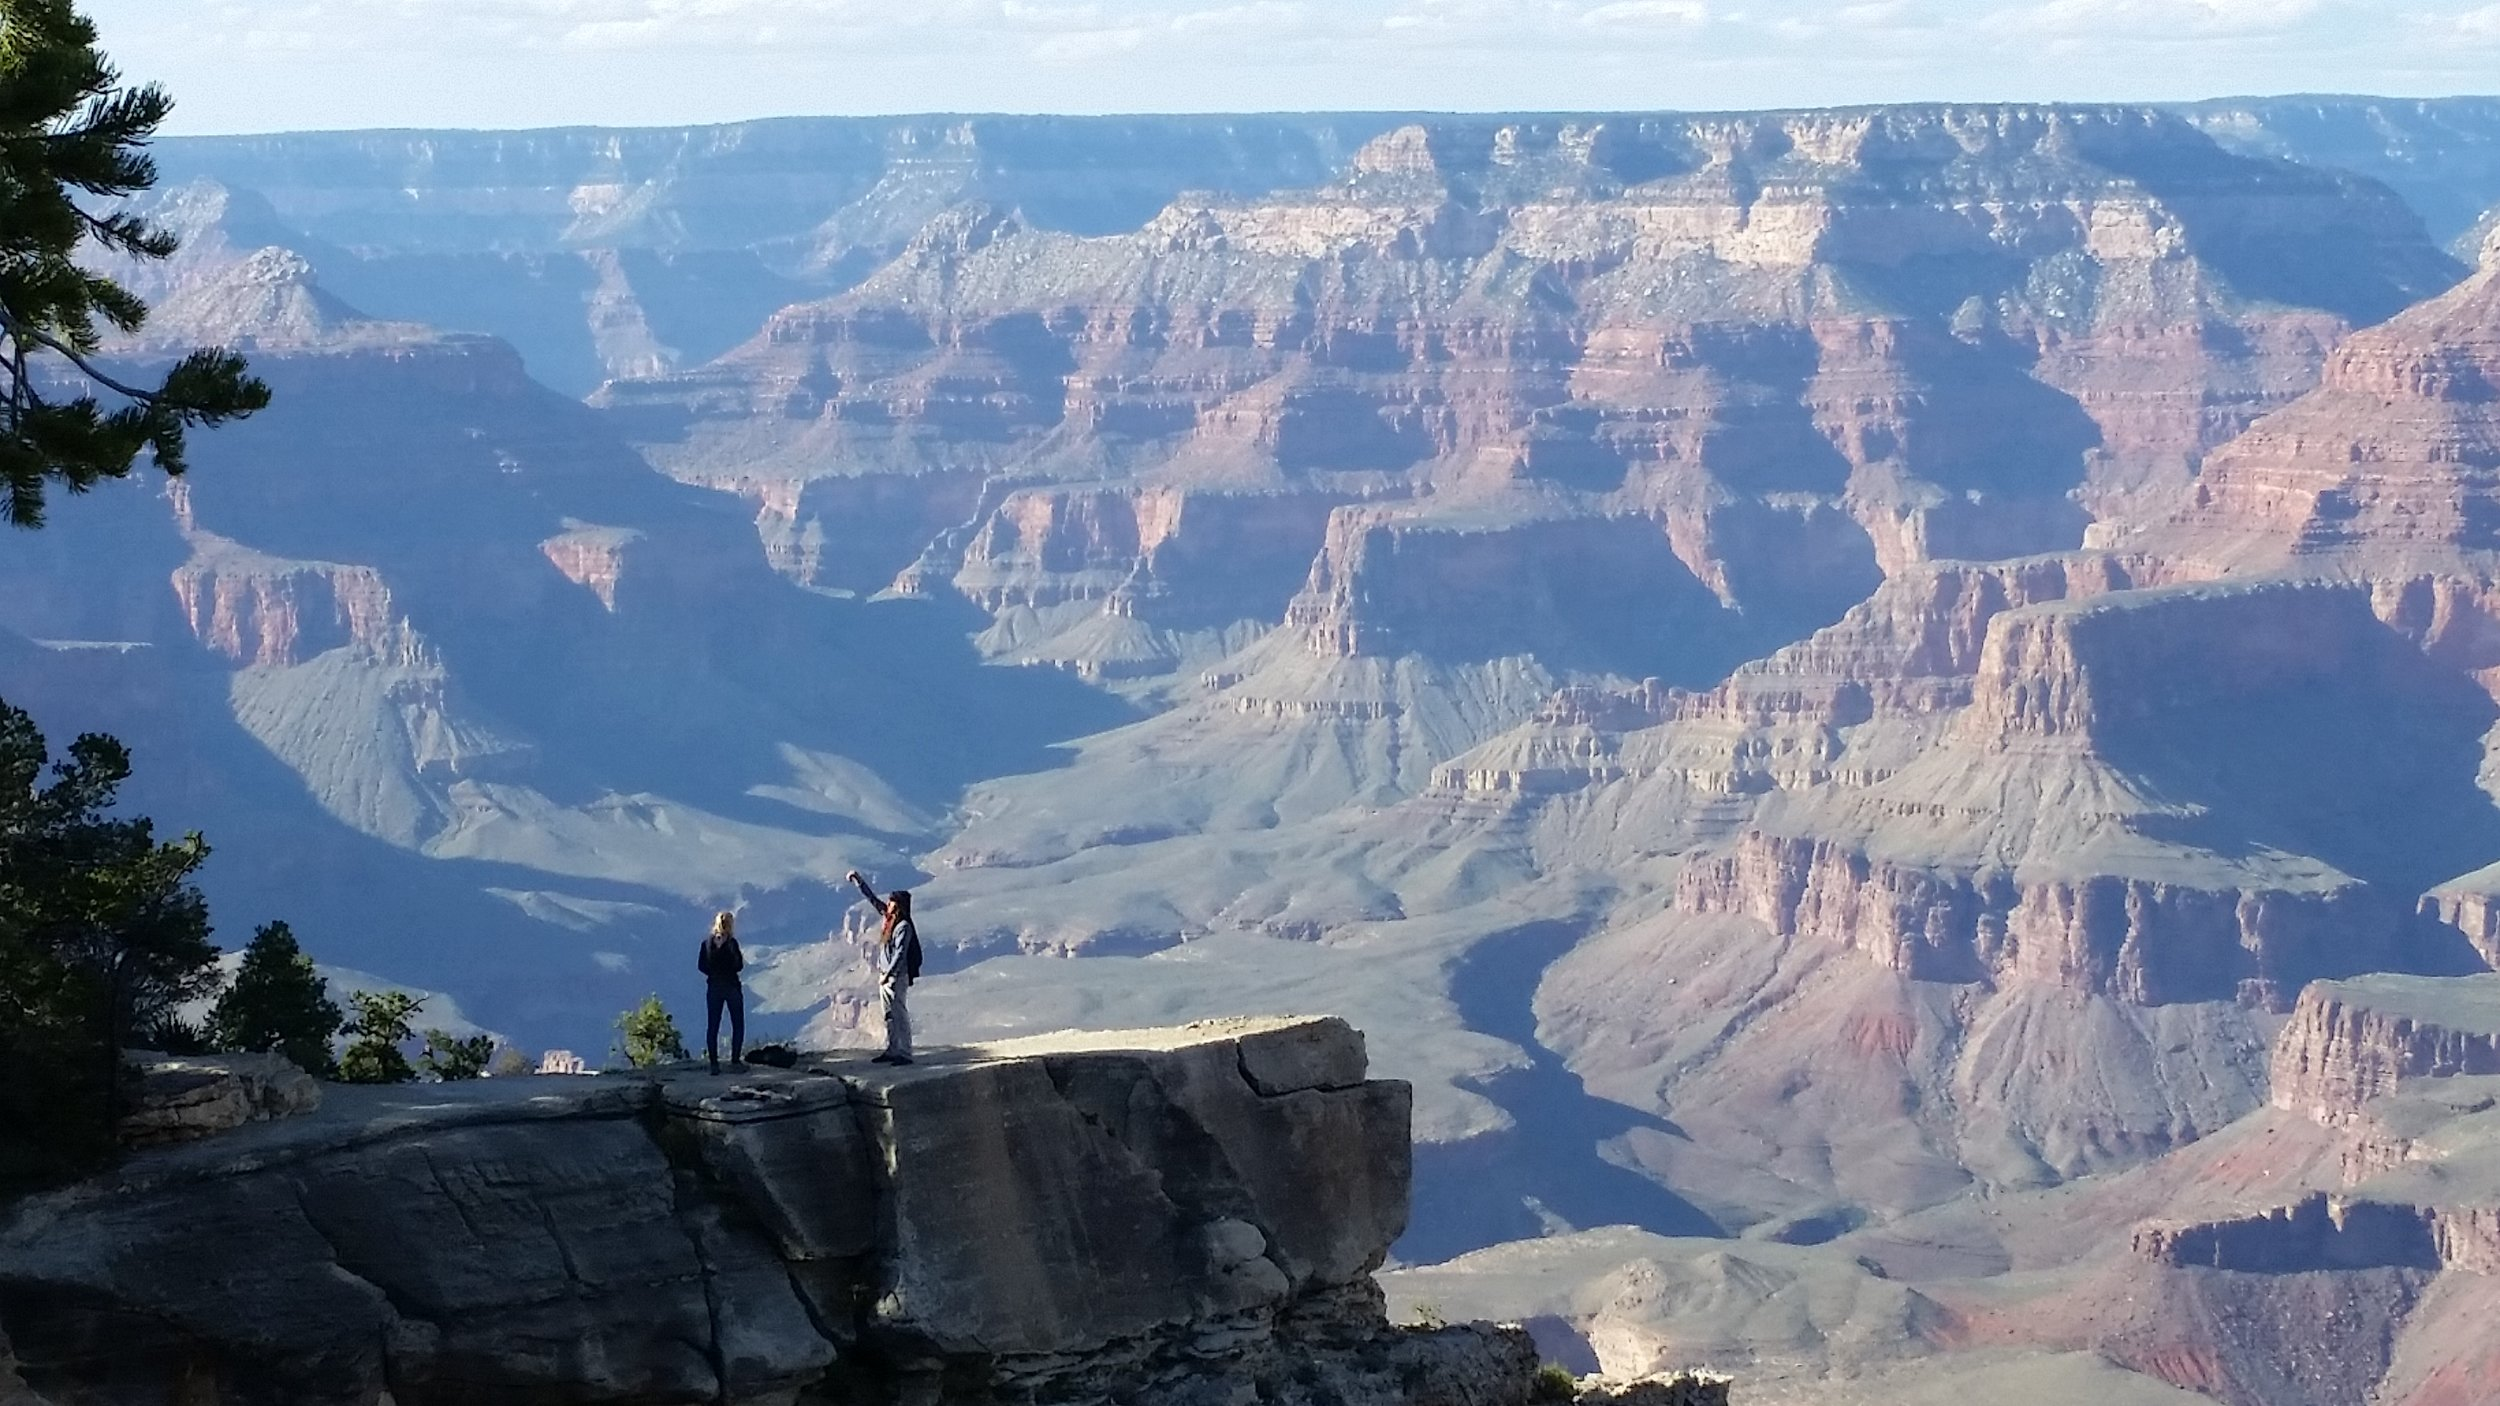 a beautiful shot ravi took of the grand canyon.